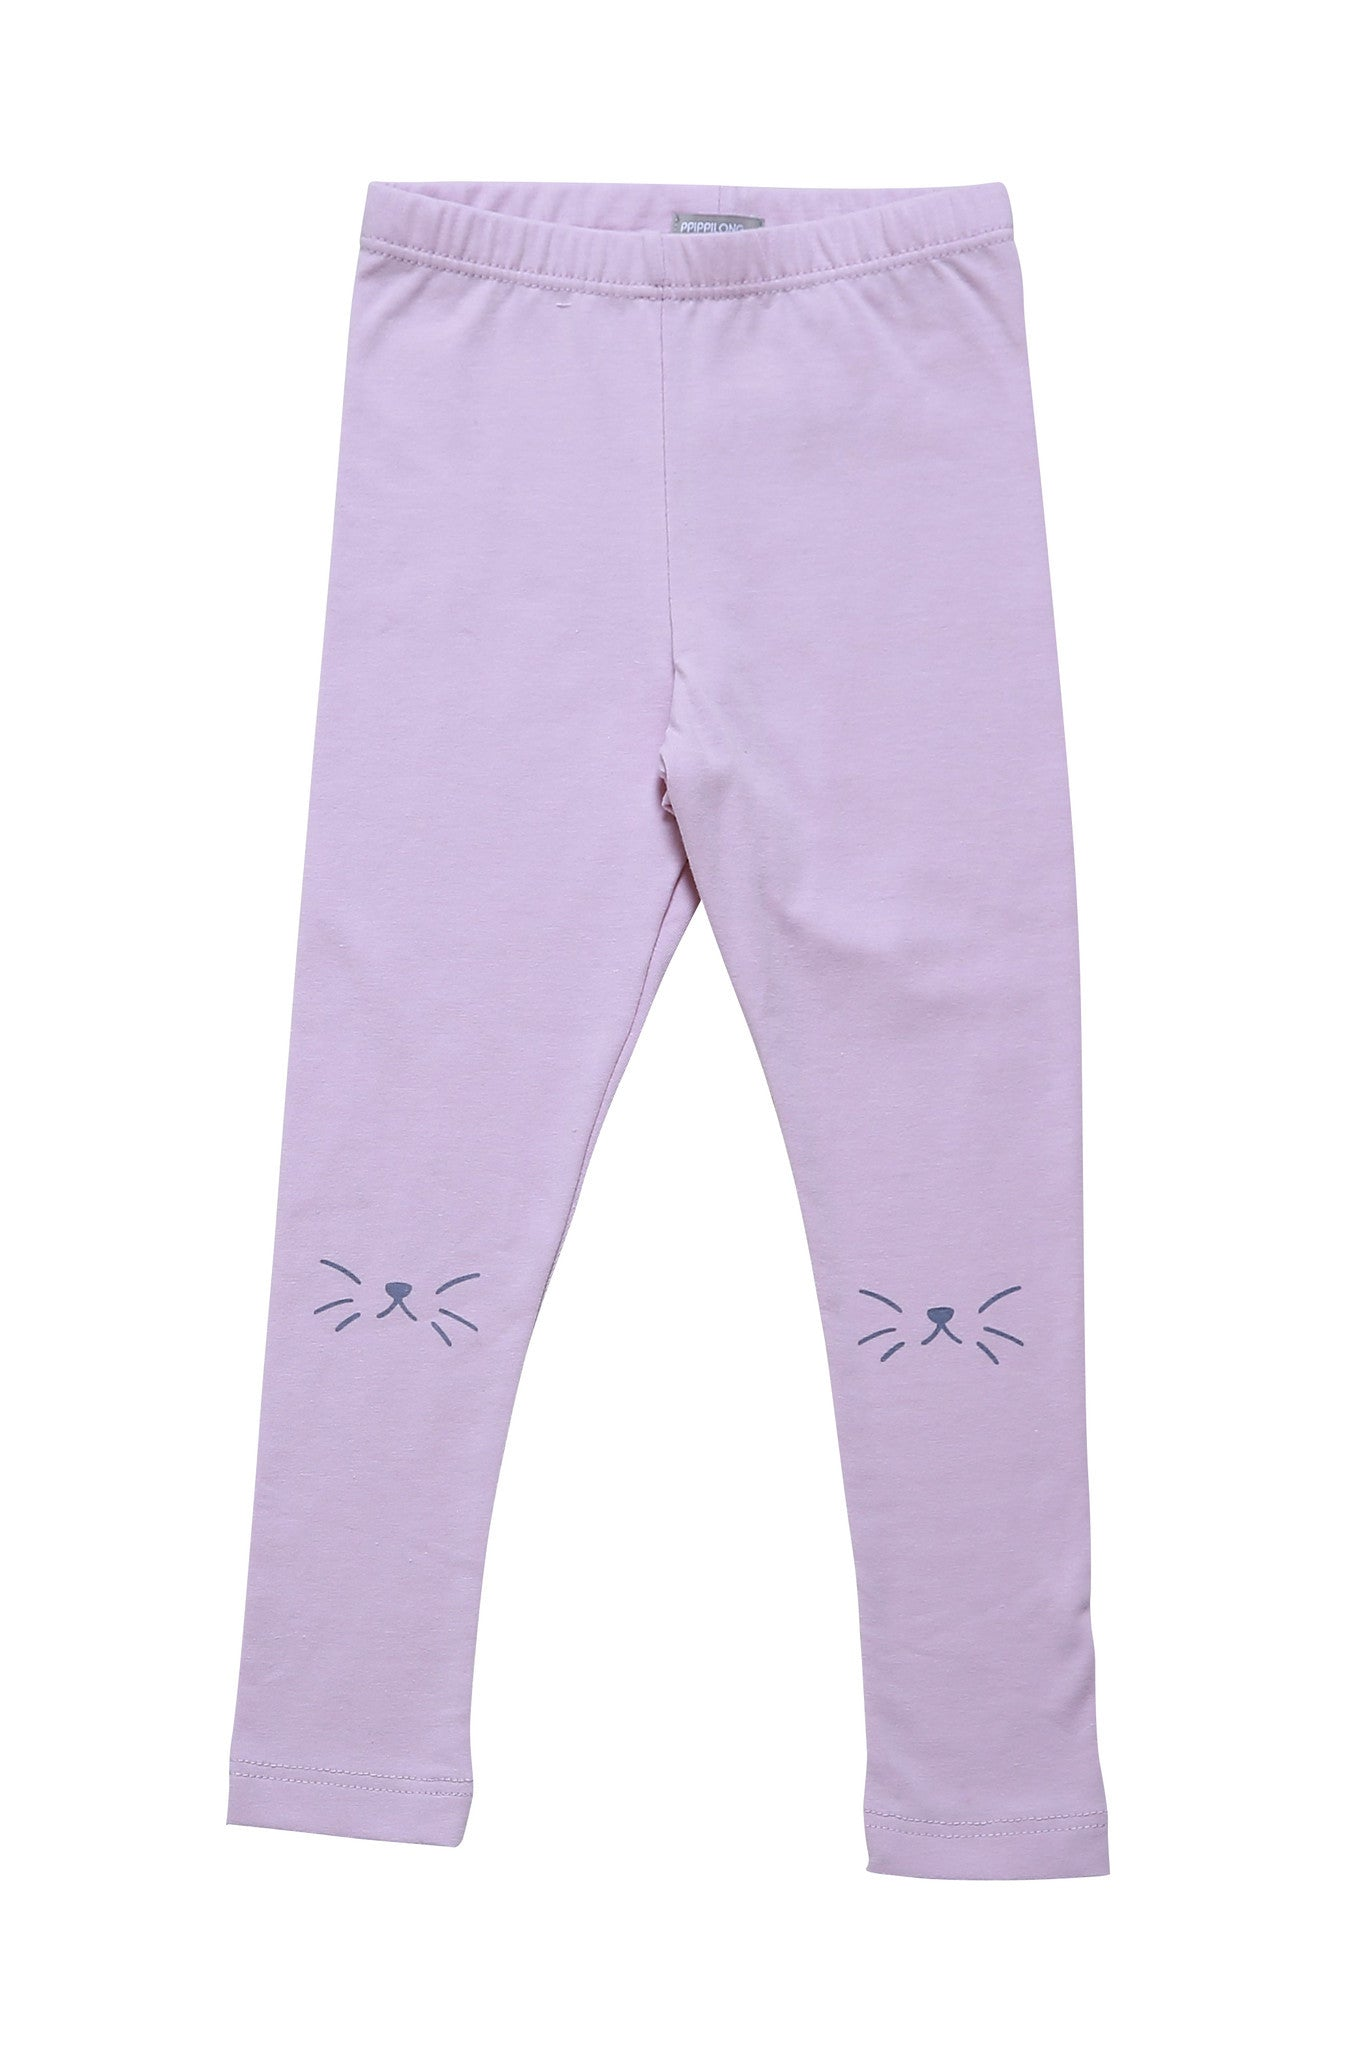 Leggings - Cat Whiskers Leggings Pink